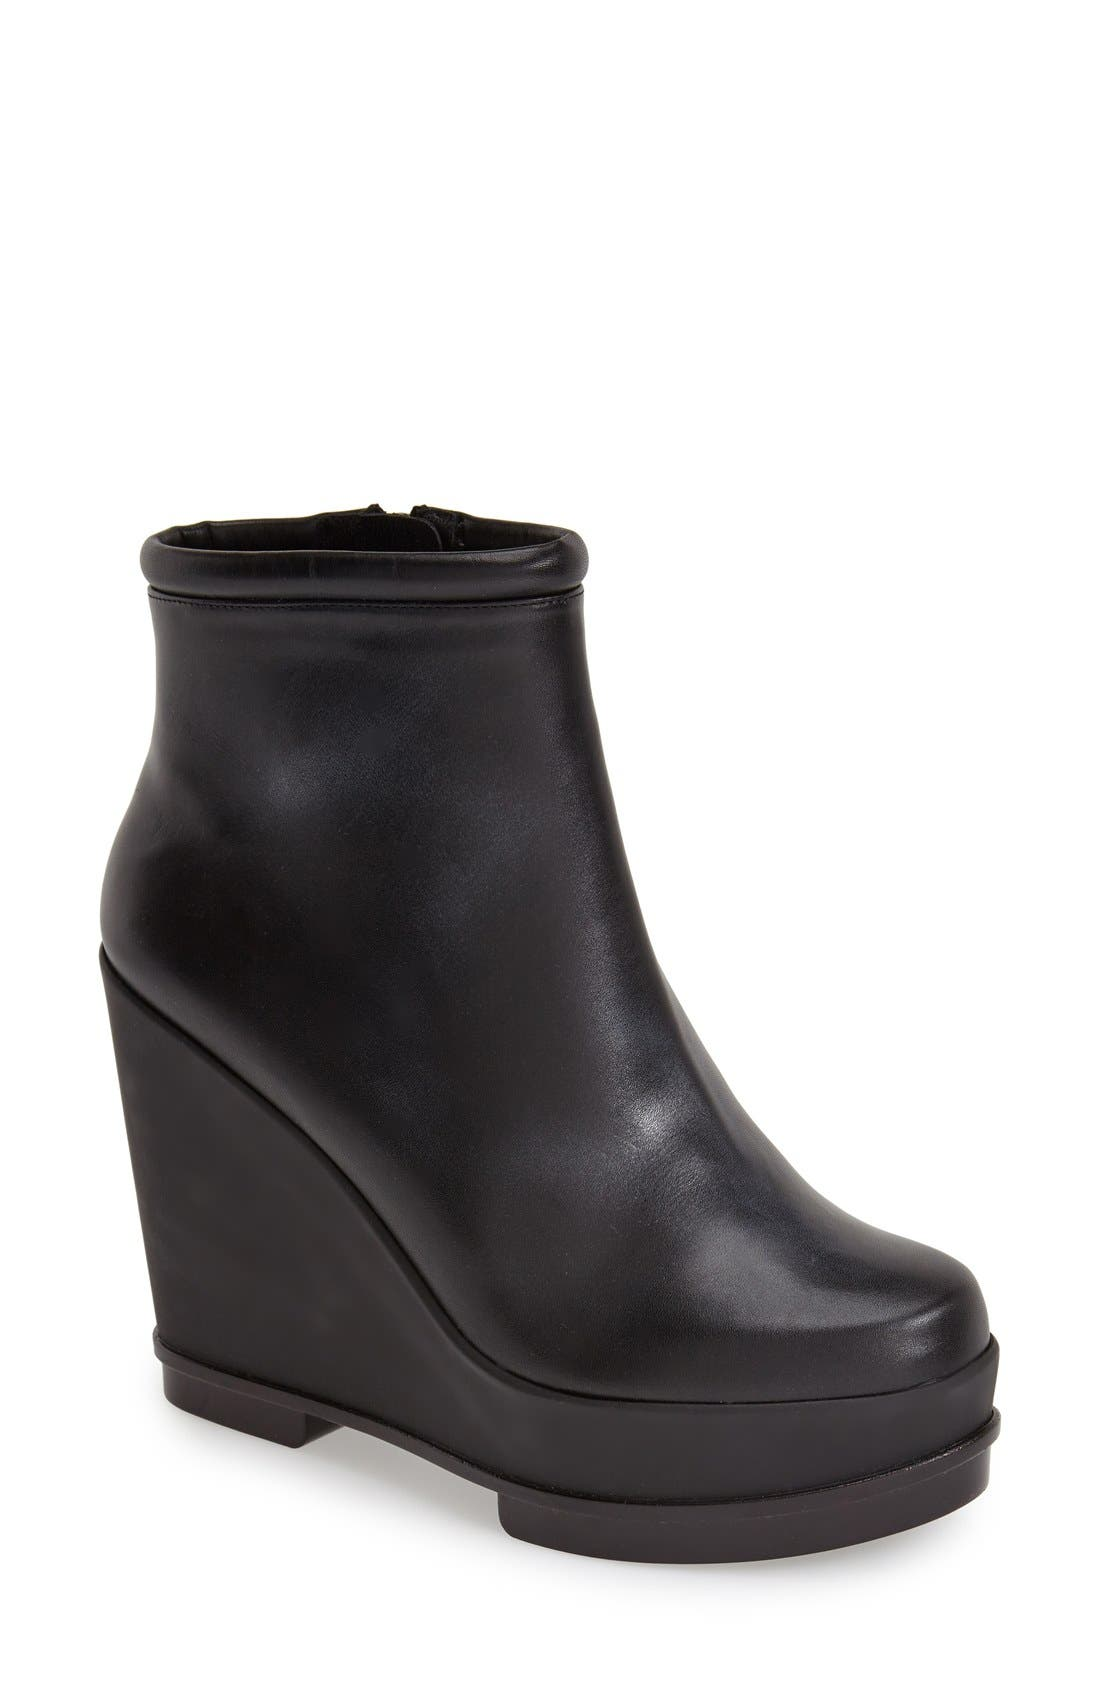 Main Image - Robert Clergerie 'Sarlaj' Wedge Bootie (Women)